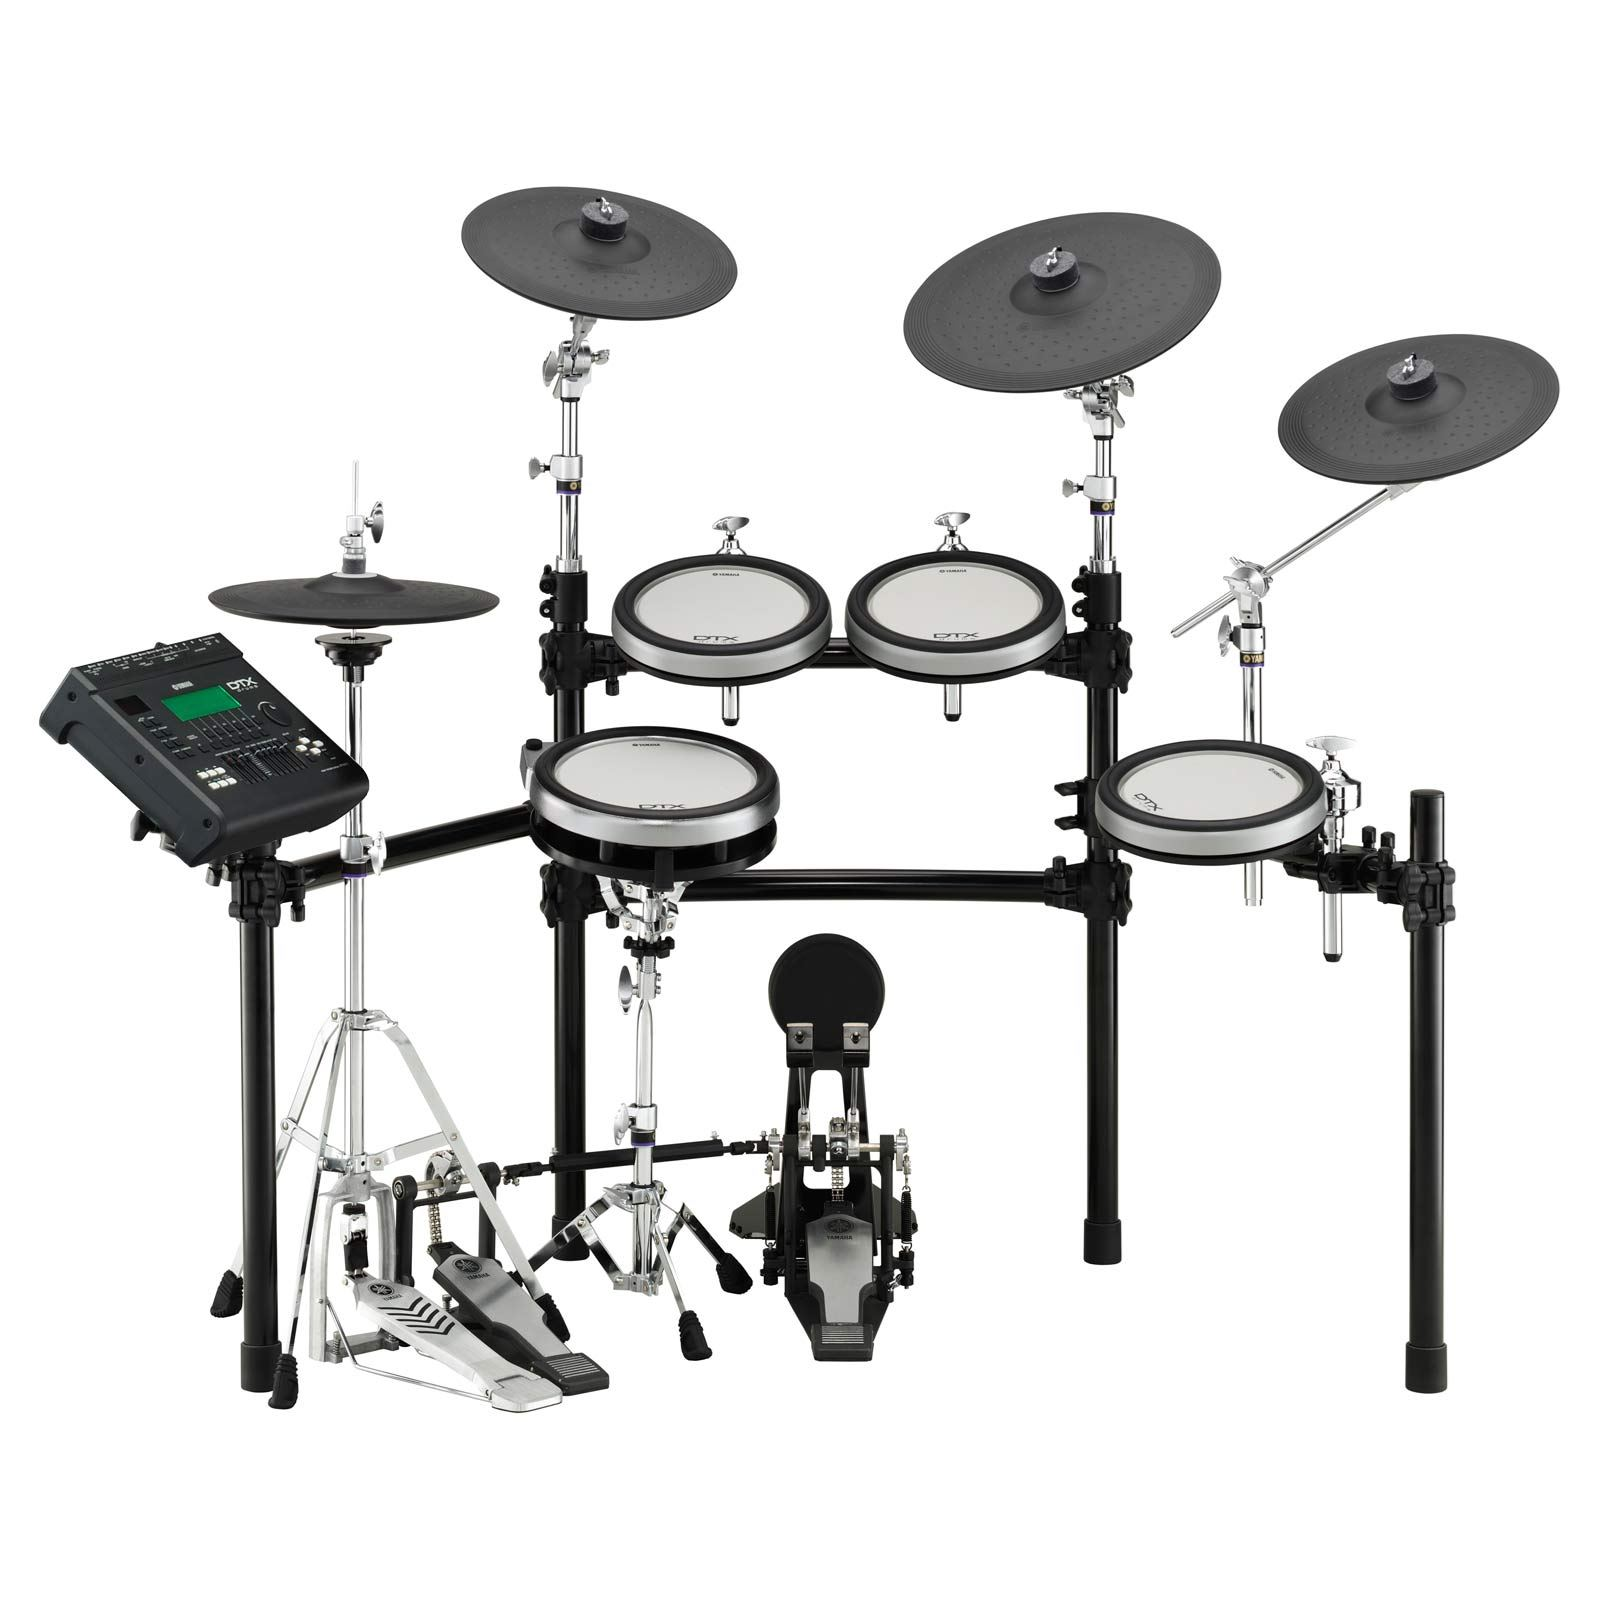 Yamaha DTX9750K Electronic Drum Kit with Hi-hat Control - Perth ...